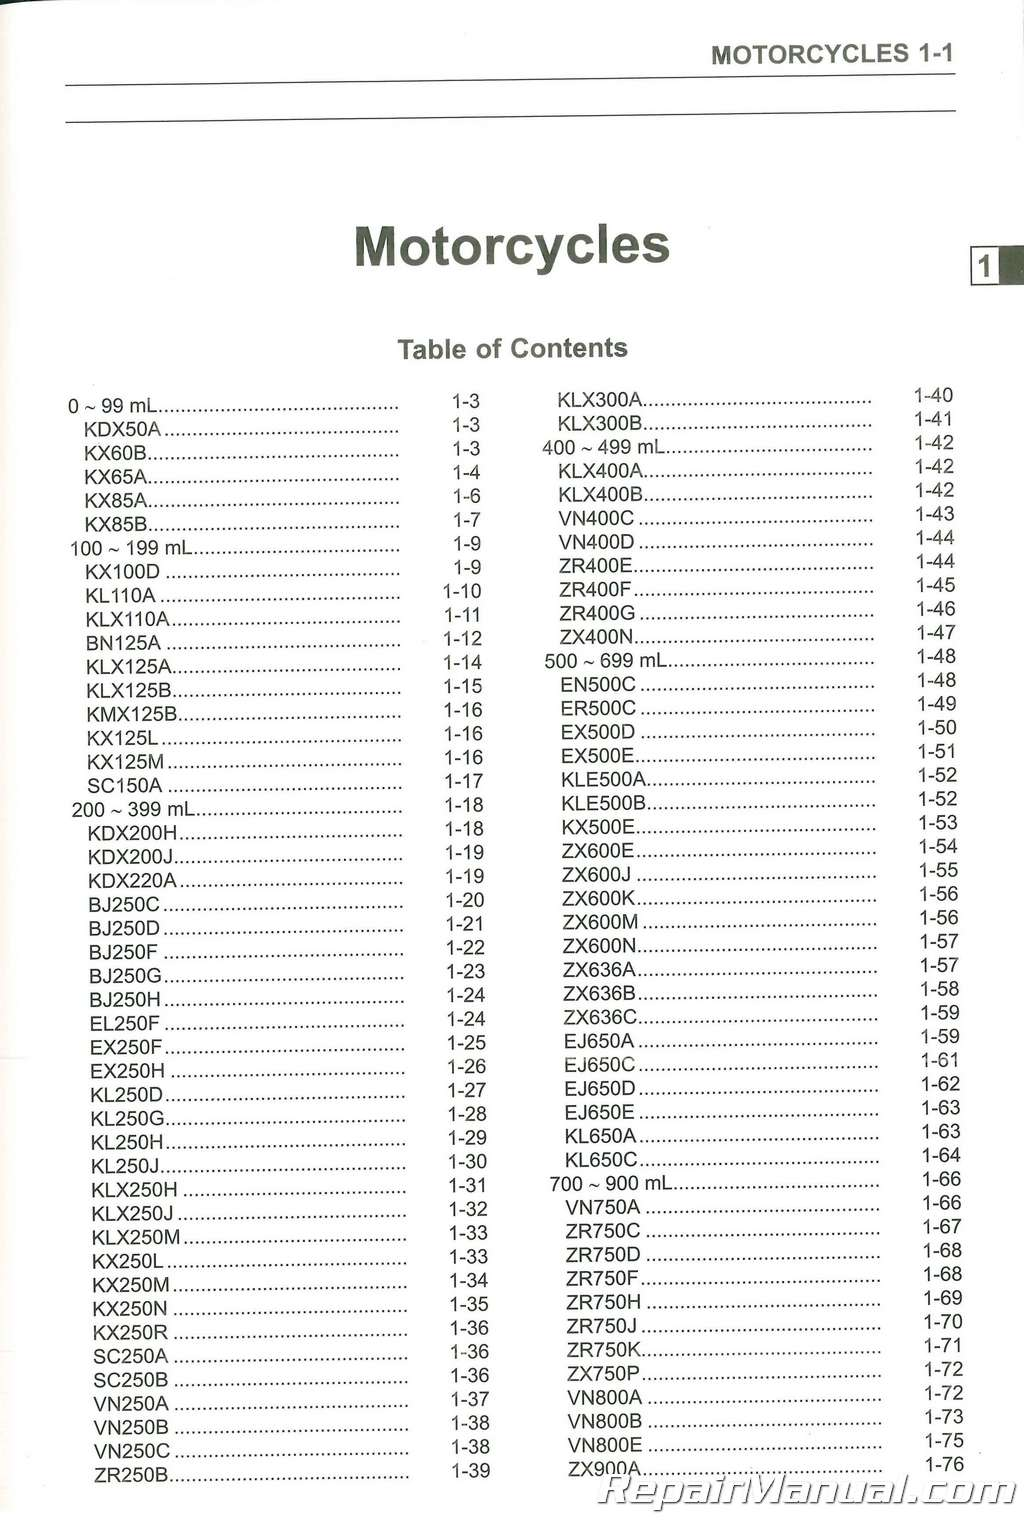 2002-2005 Kawasaki Model Recognition Manual